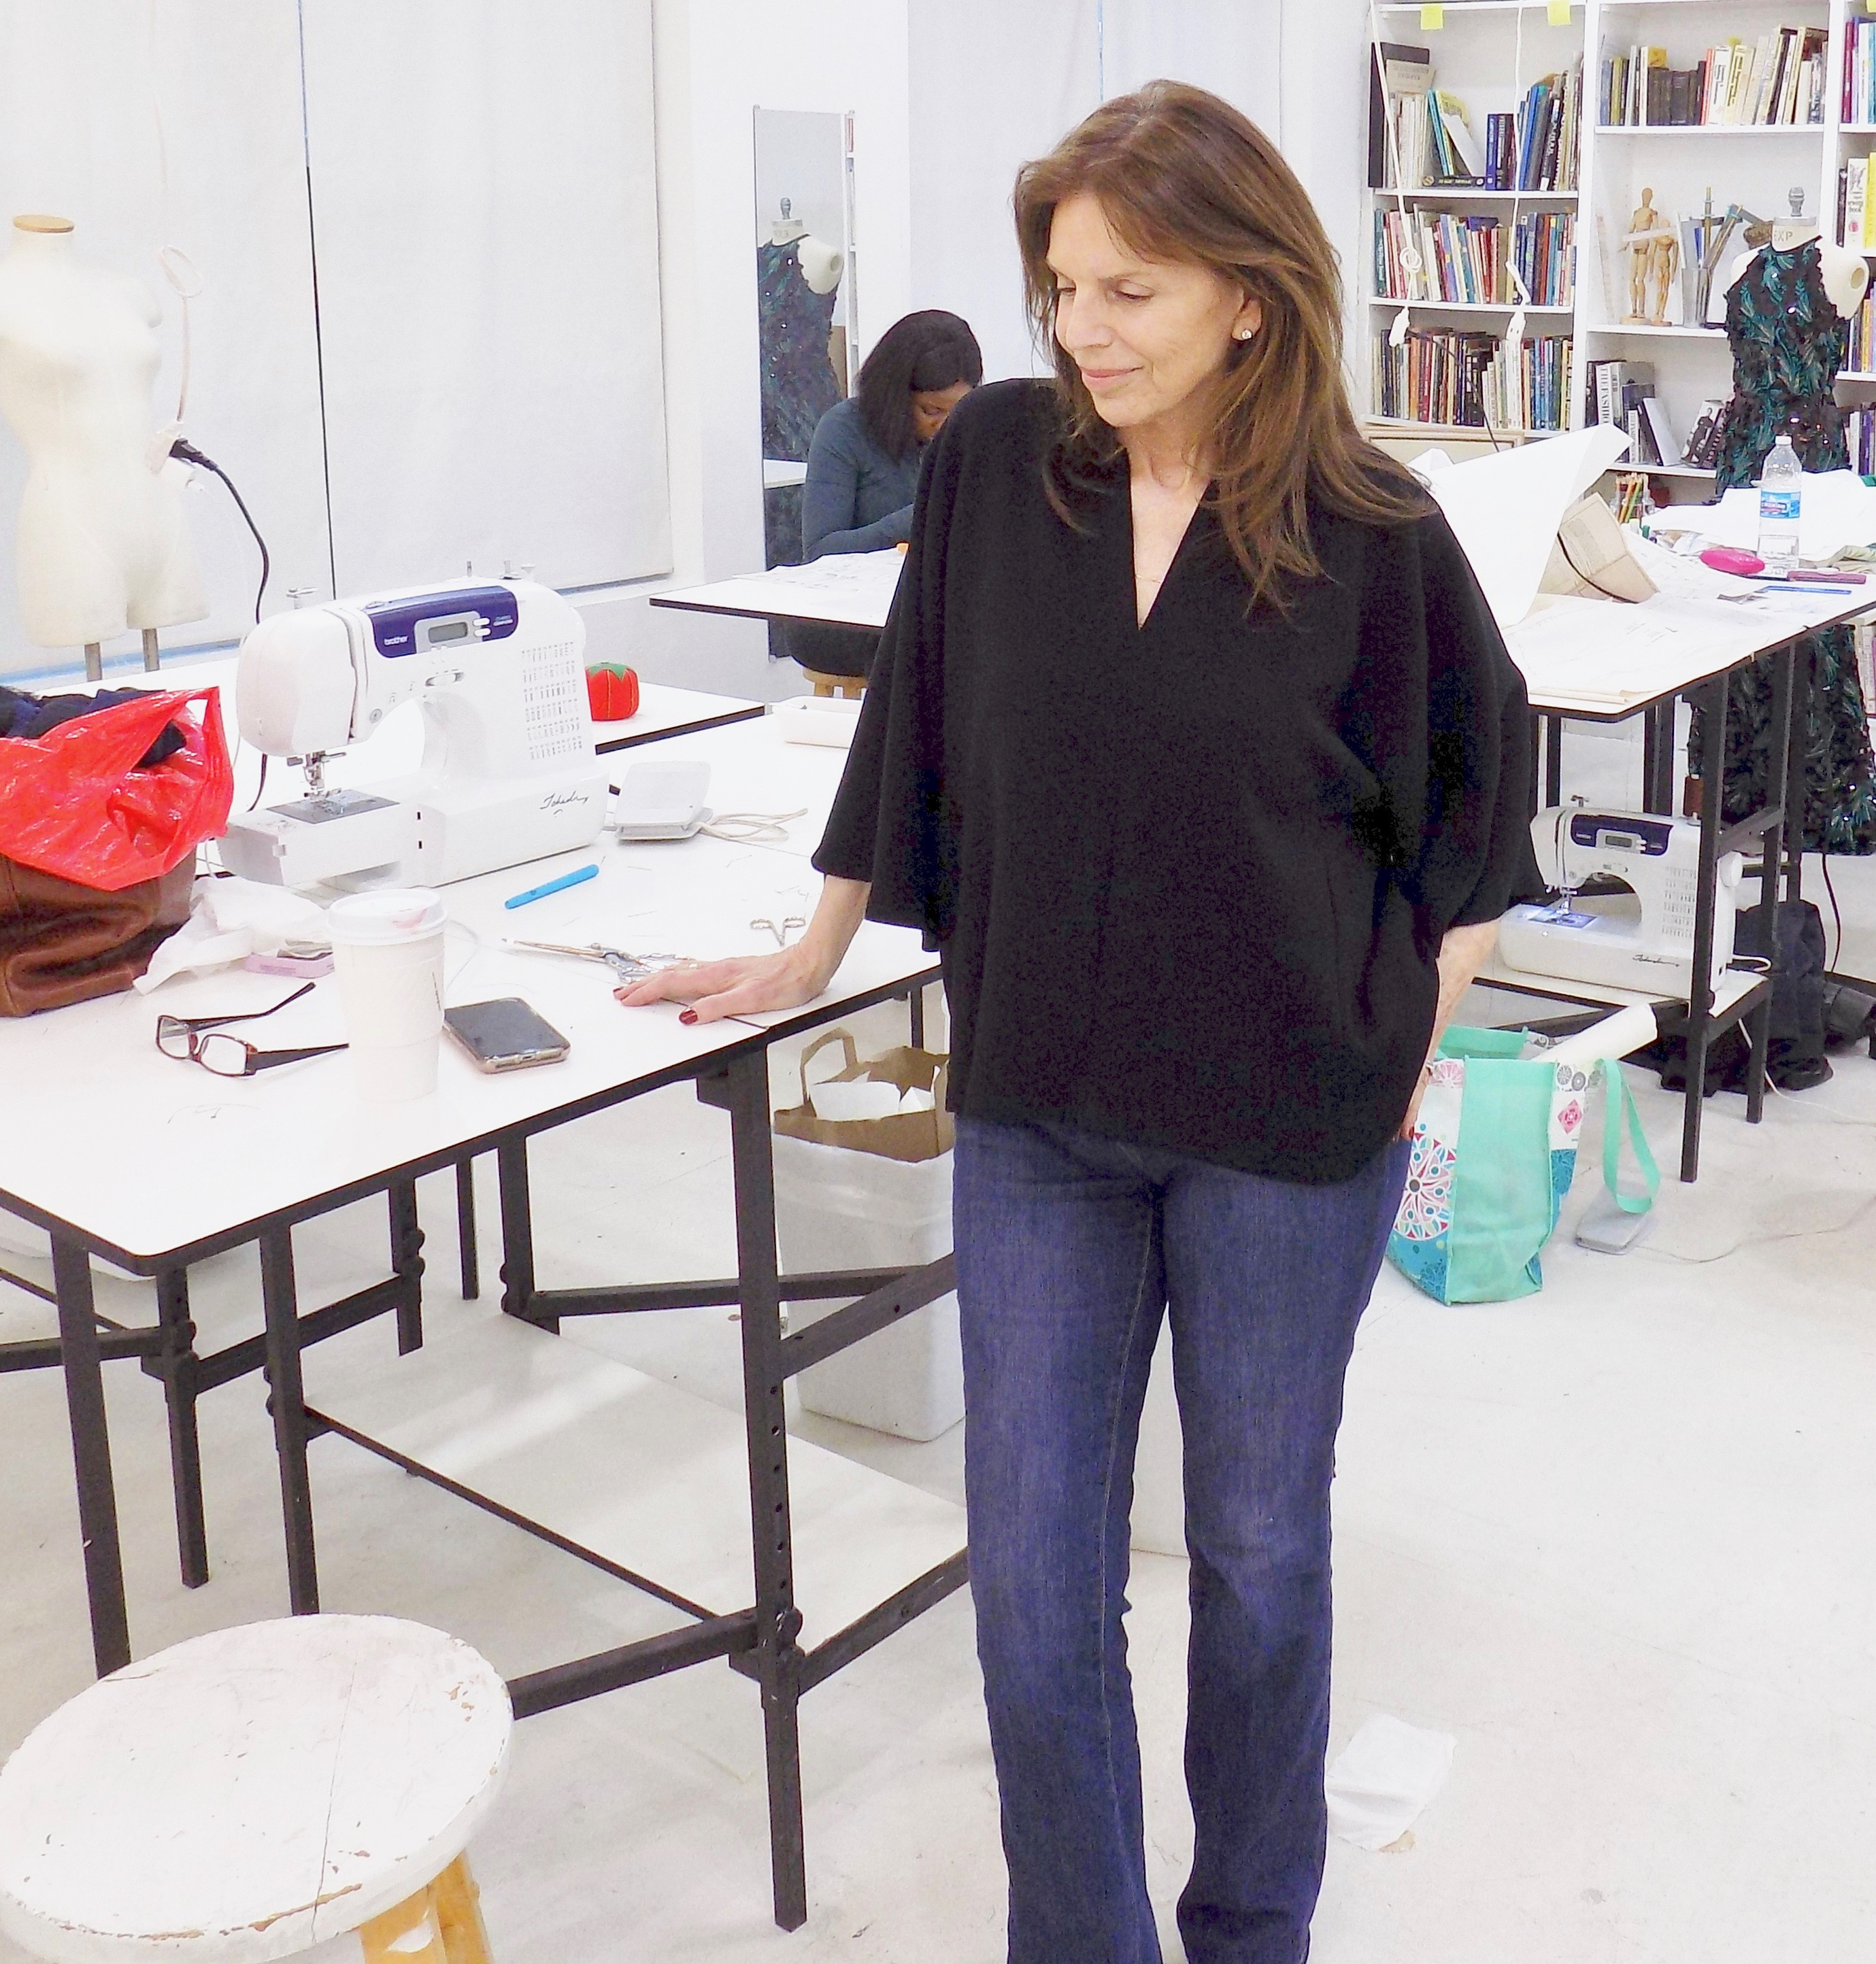 Peggy Asherman modeling her adapted Helmut Lang kimono cut blouse in black crepe at the Tchad workroom sewing studio in Chicago